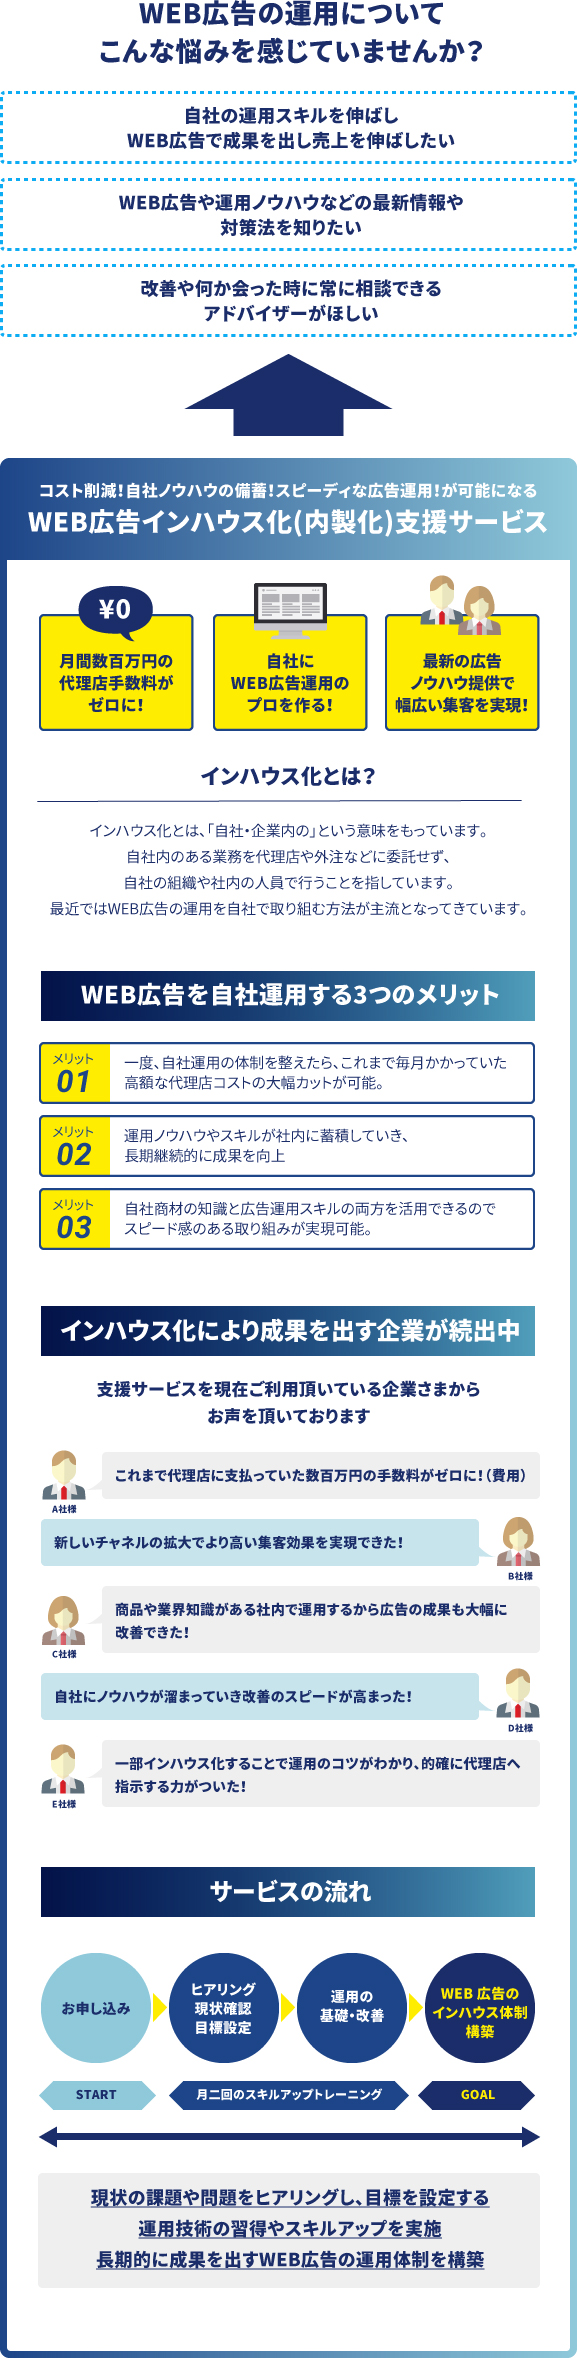 WEB広告インハウス化(内製化)支援サービス